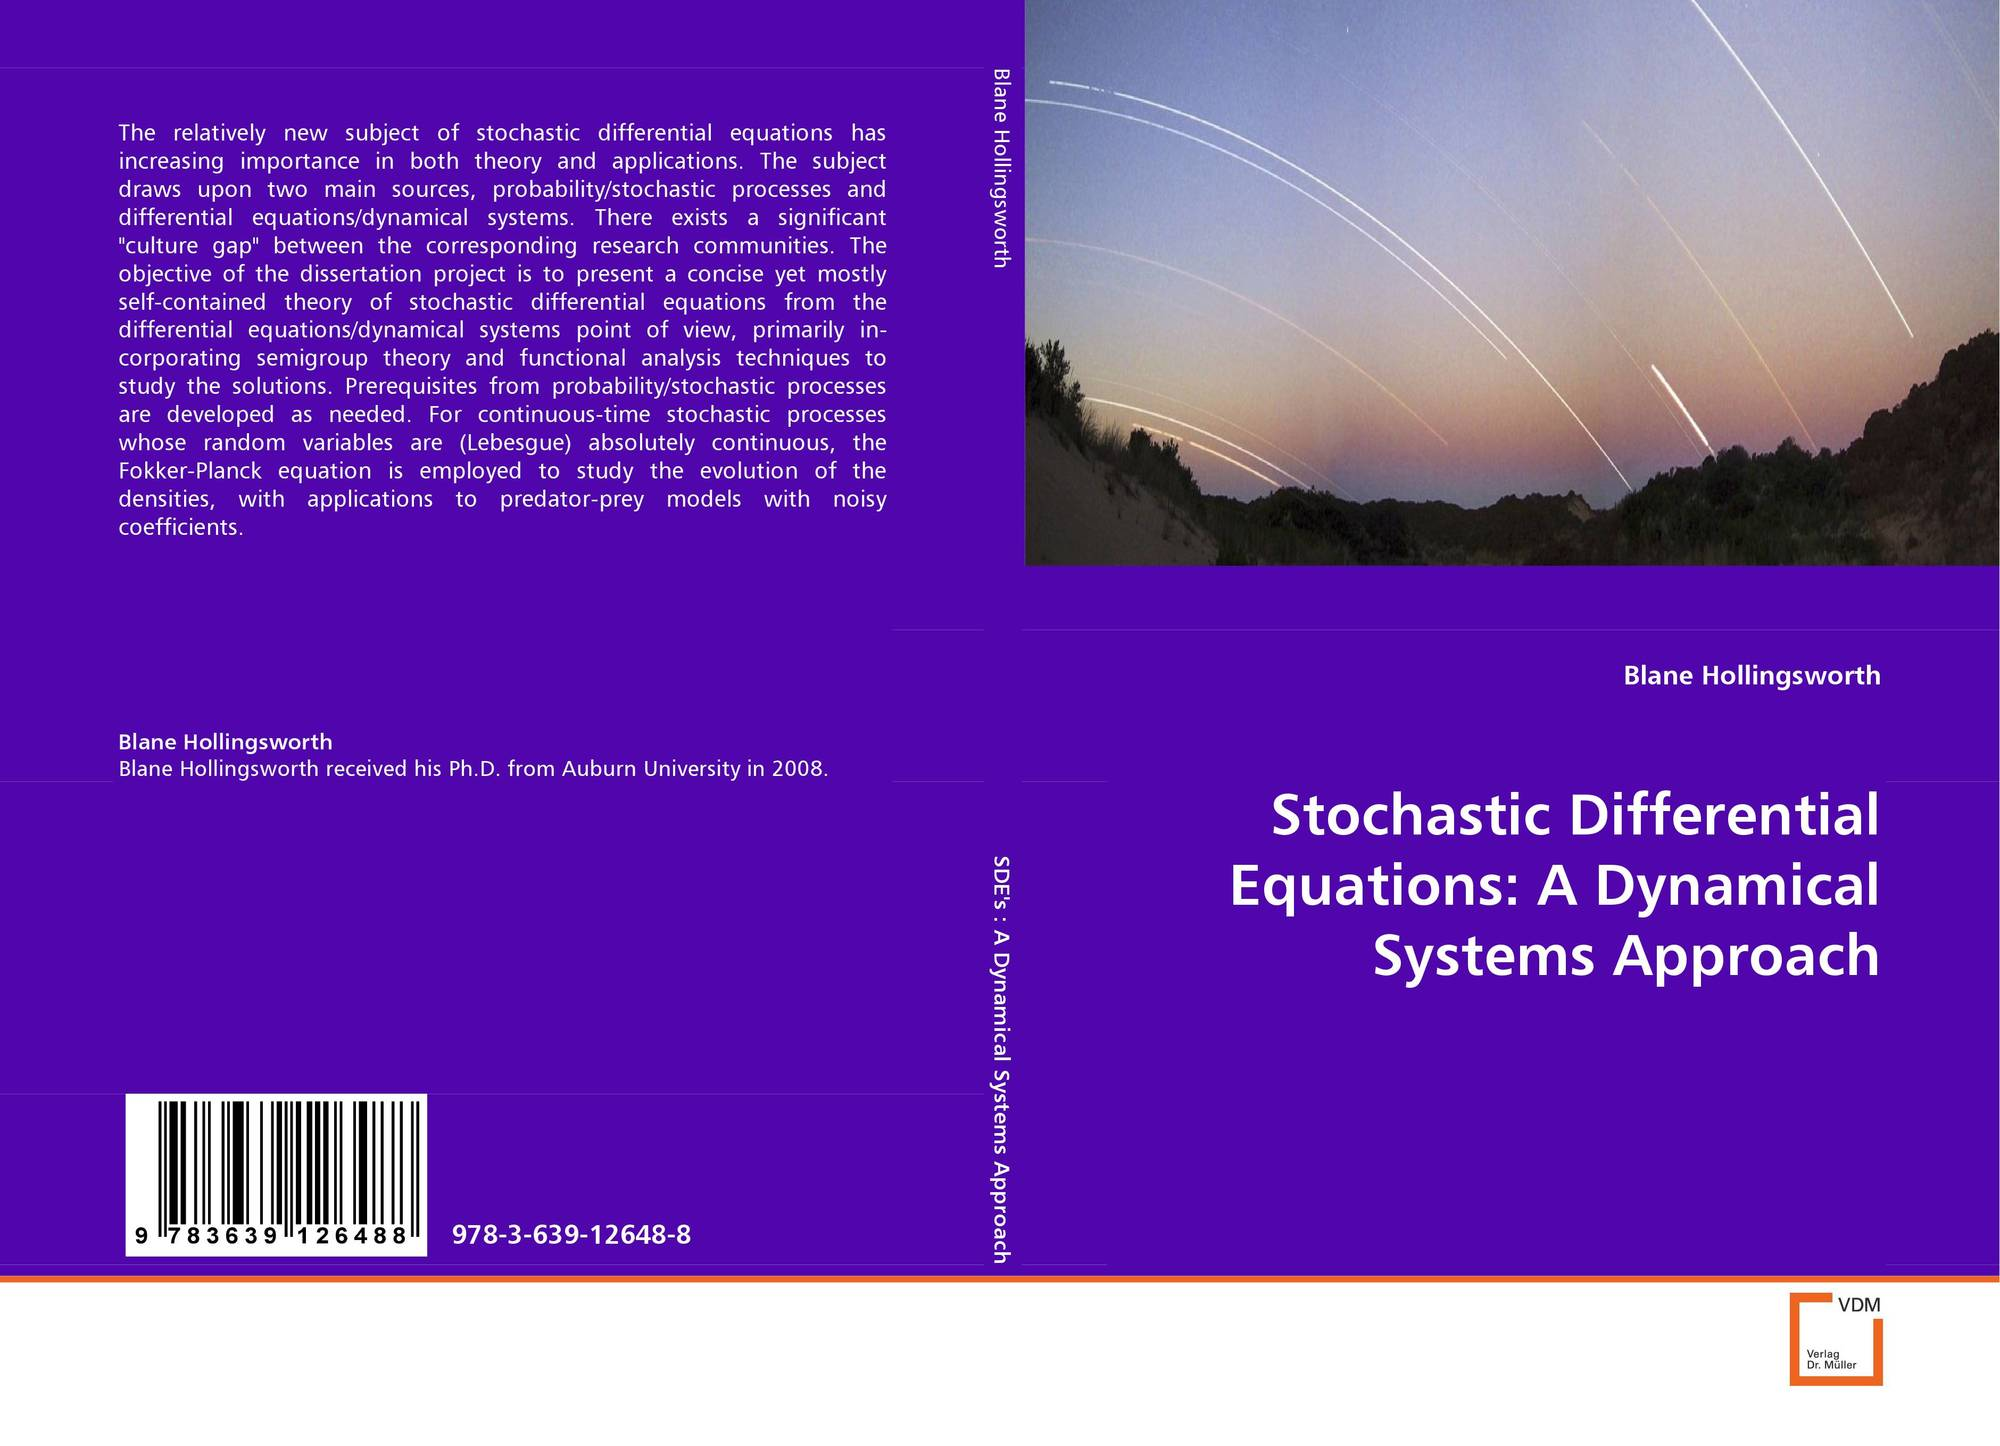 Stochastic Differential Equations: A DynamicalSystems